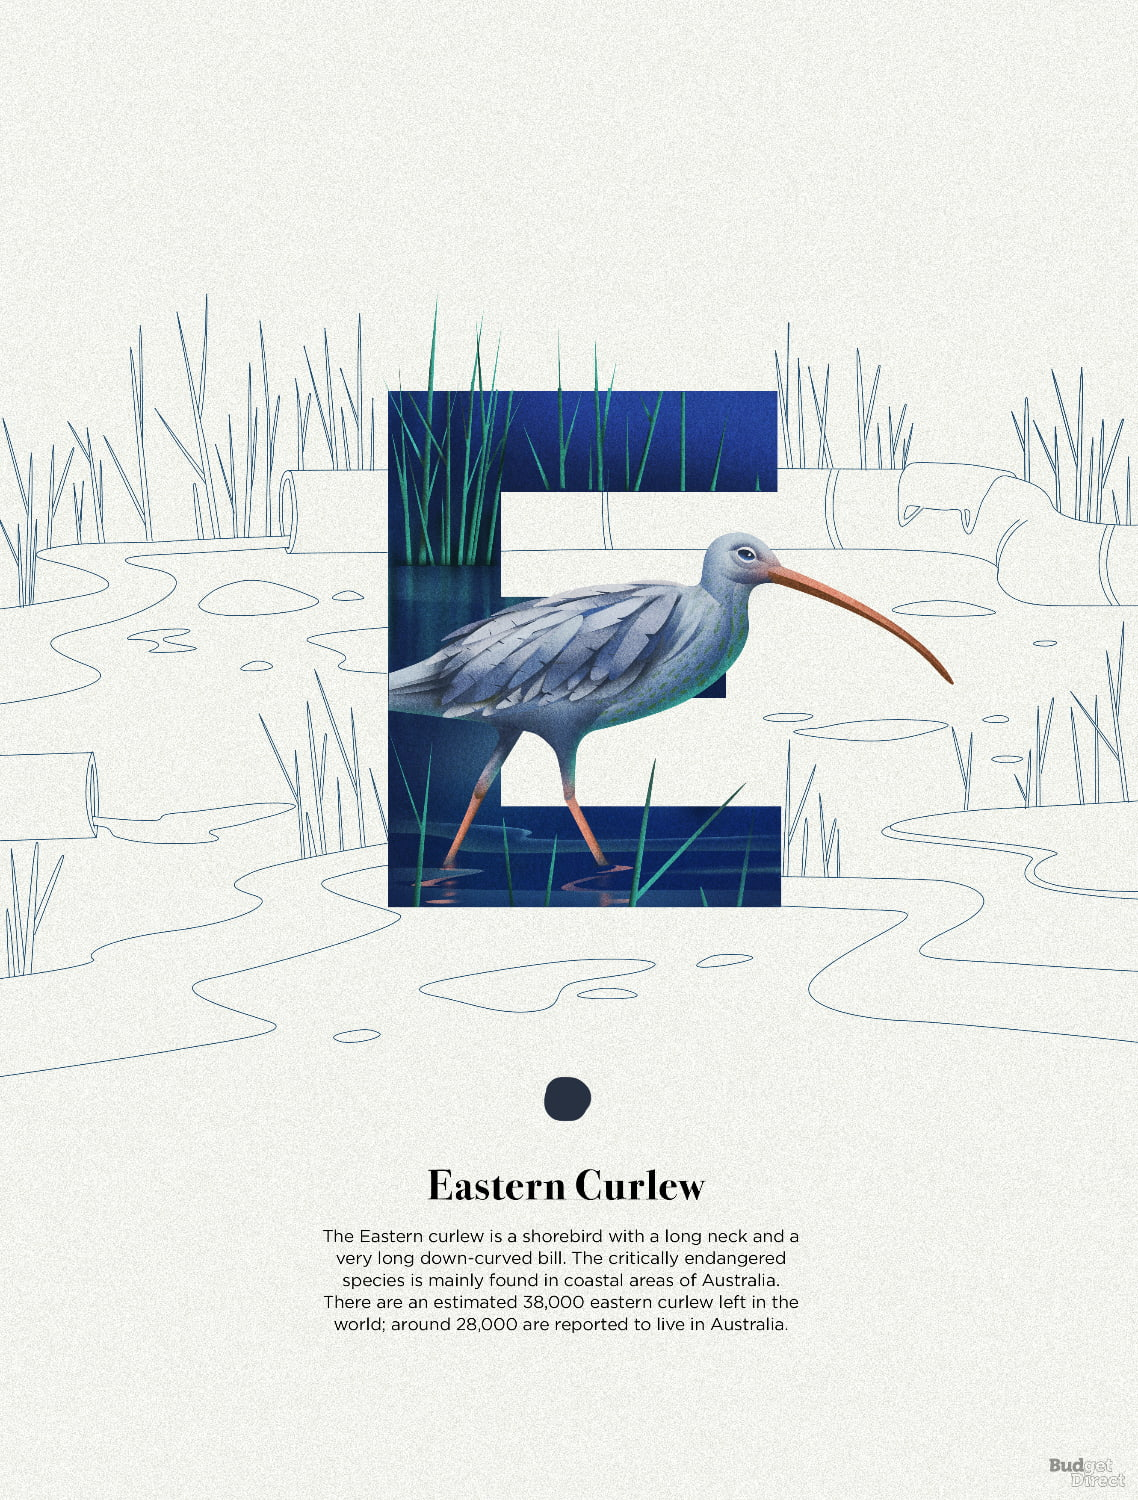 E is for Eastern Curlew